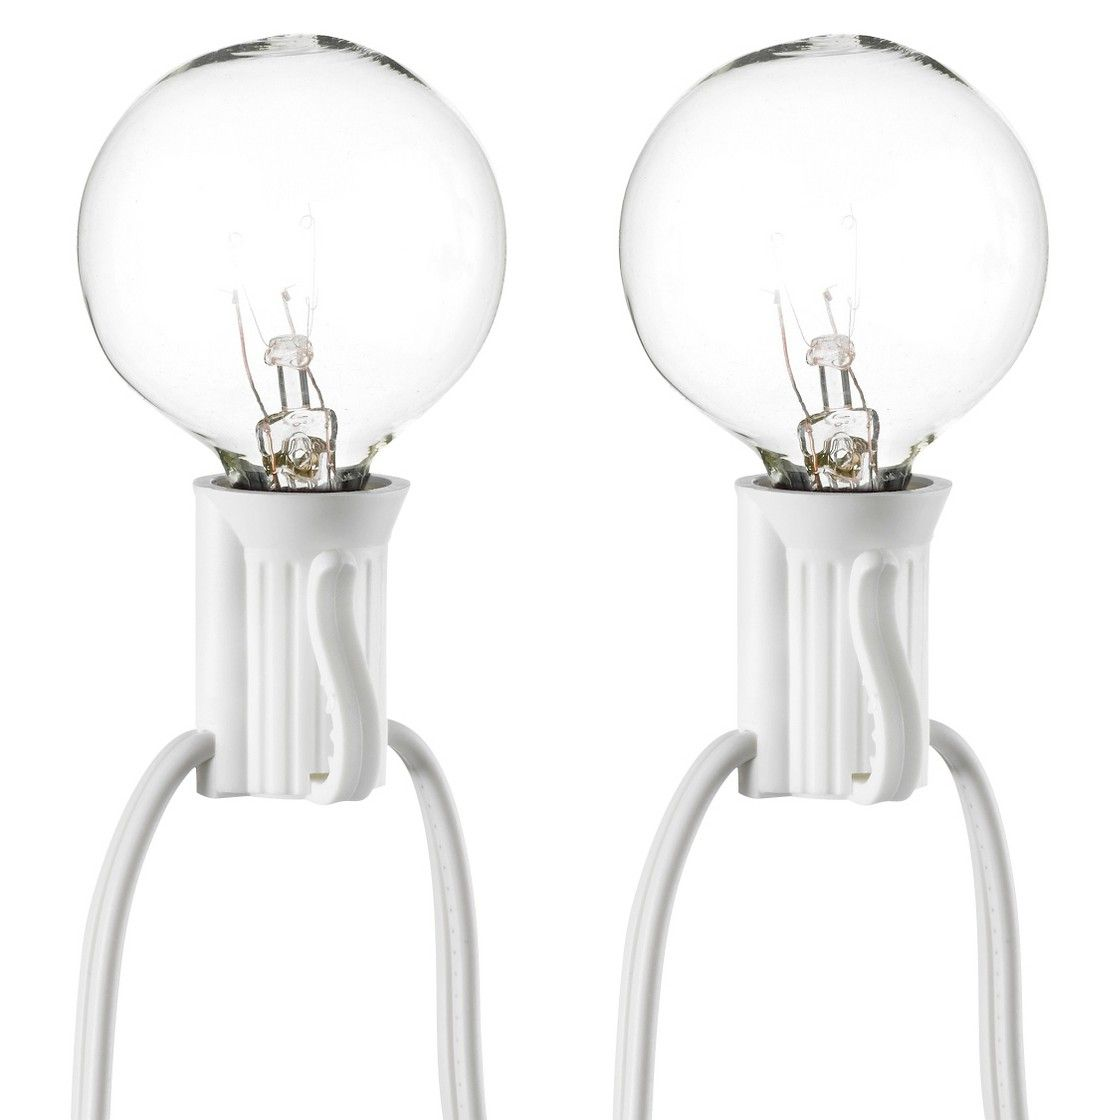 $14.99 Room Essential 25ct Clear Globe String Light White Wire ...